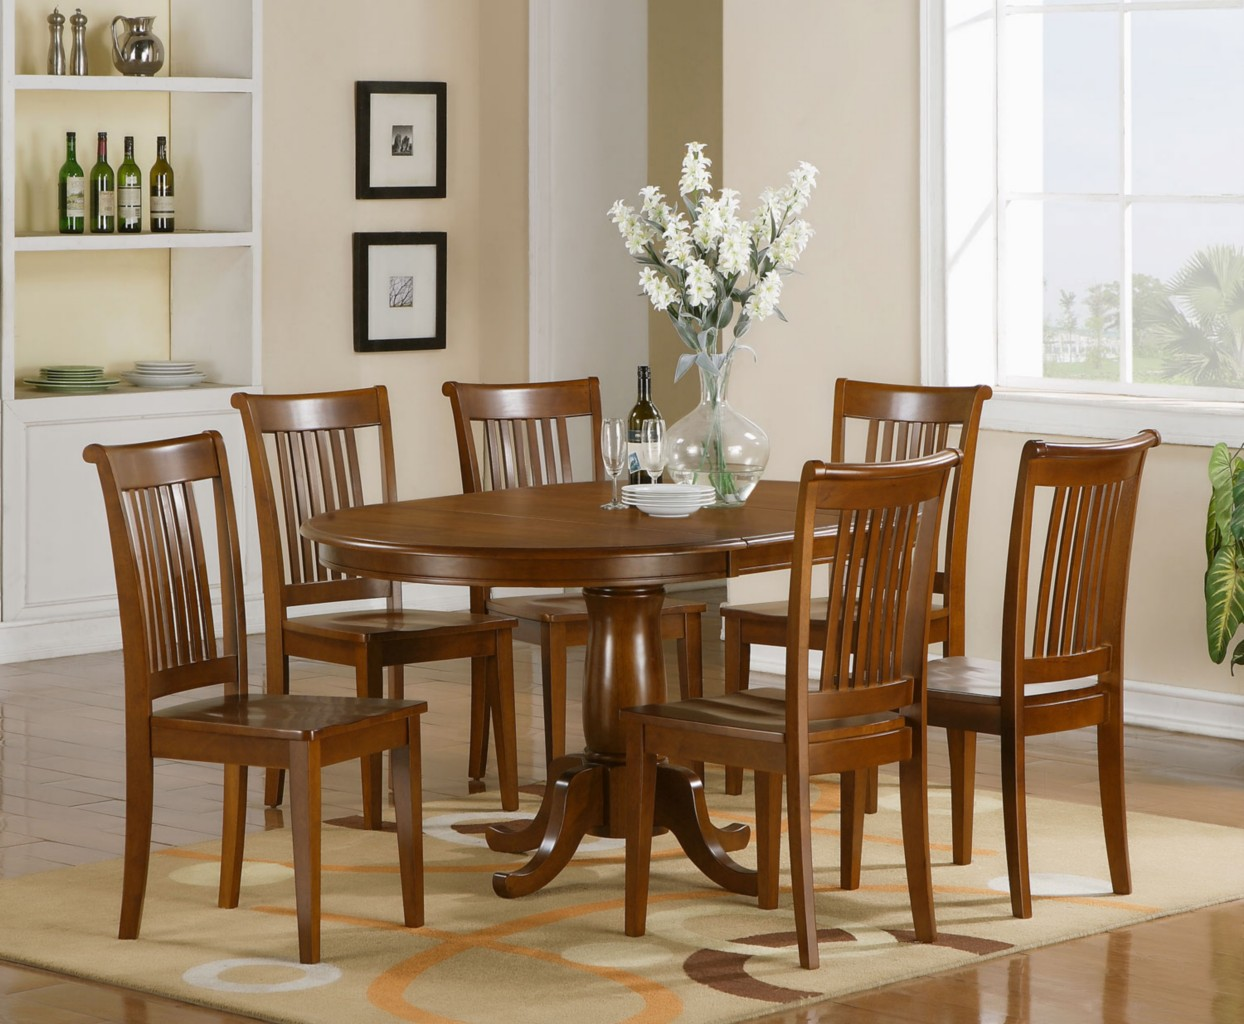 kitchen chairs: kitchen table and 6 chairs